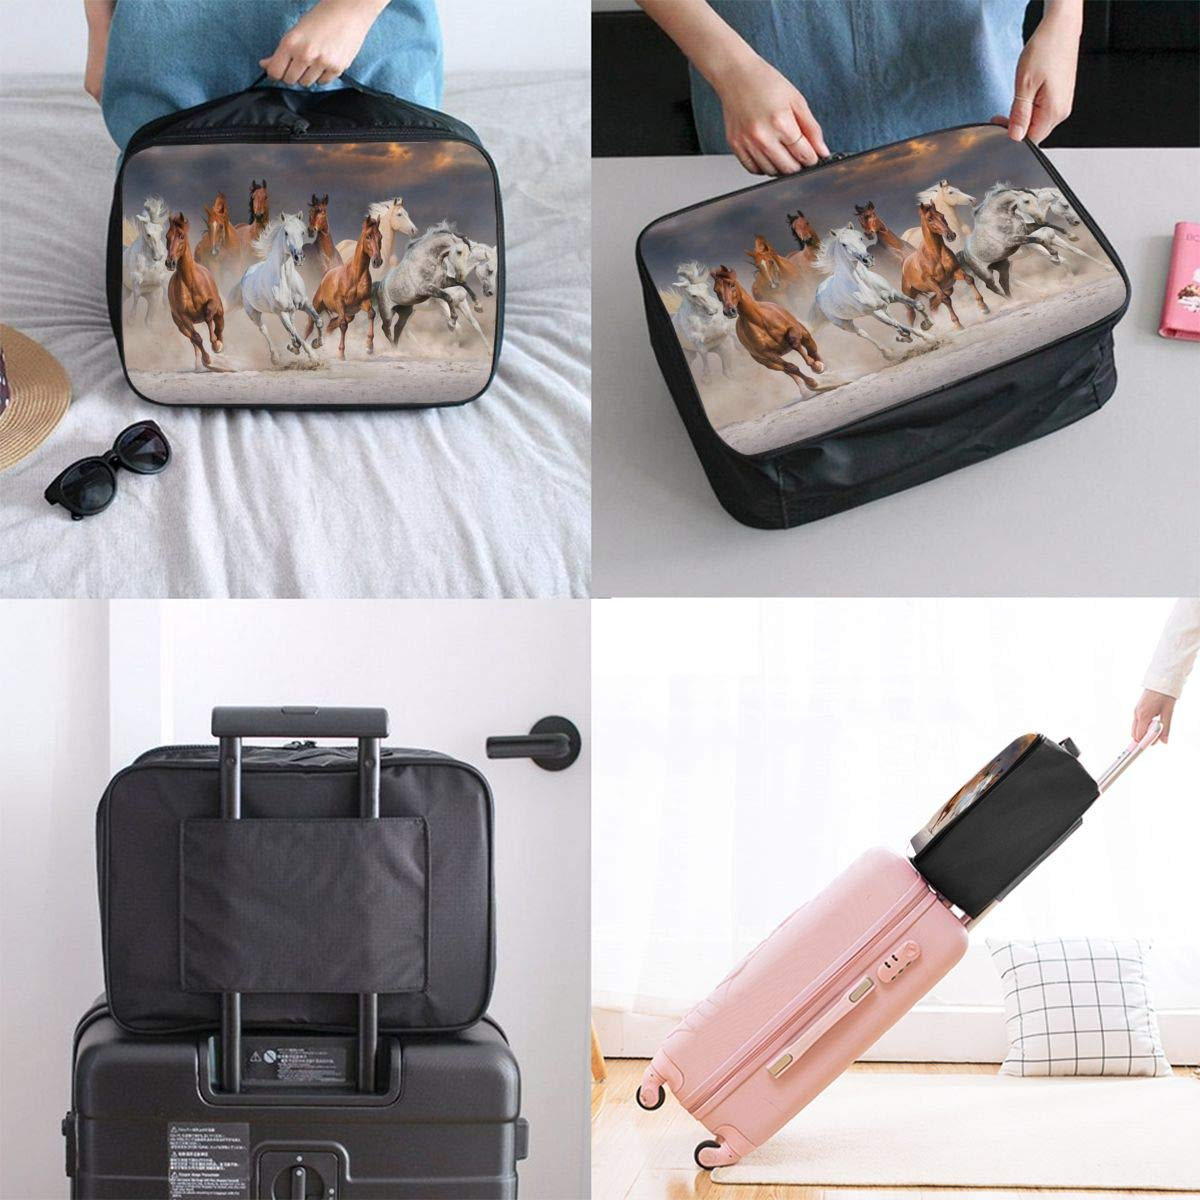 ADGAI Running Horse Canvas Travel Weekender Bag,Fashion Custom Lightweight Large Capacity Portable Luggage Bag,Suitcase Trolley Bag